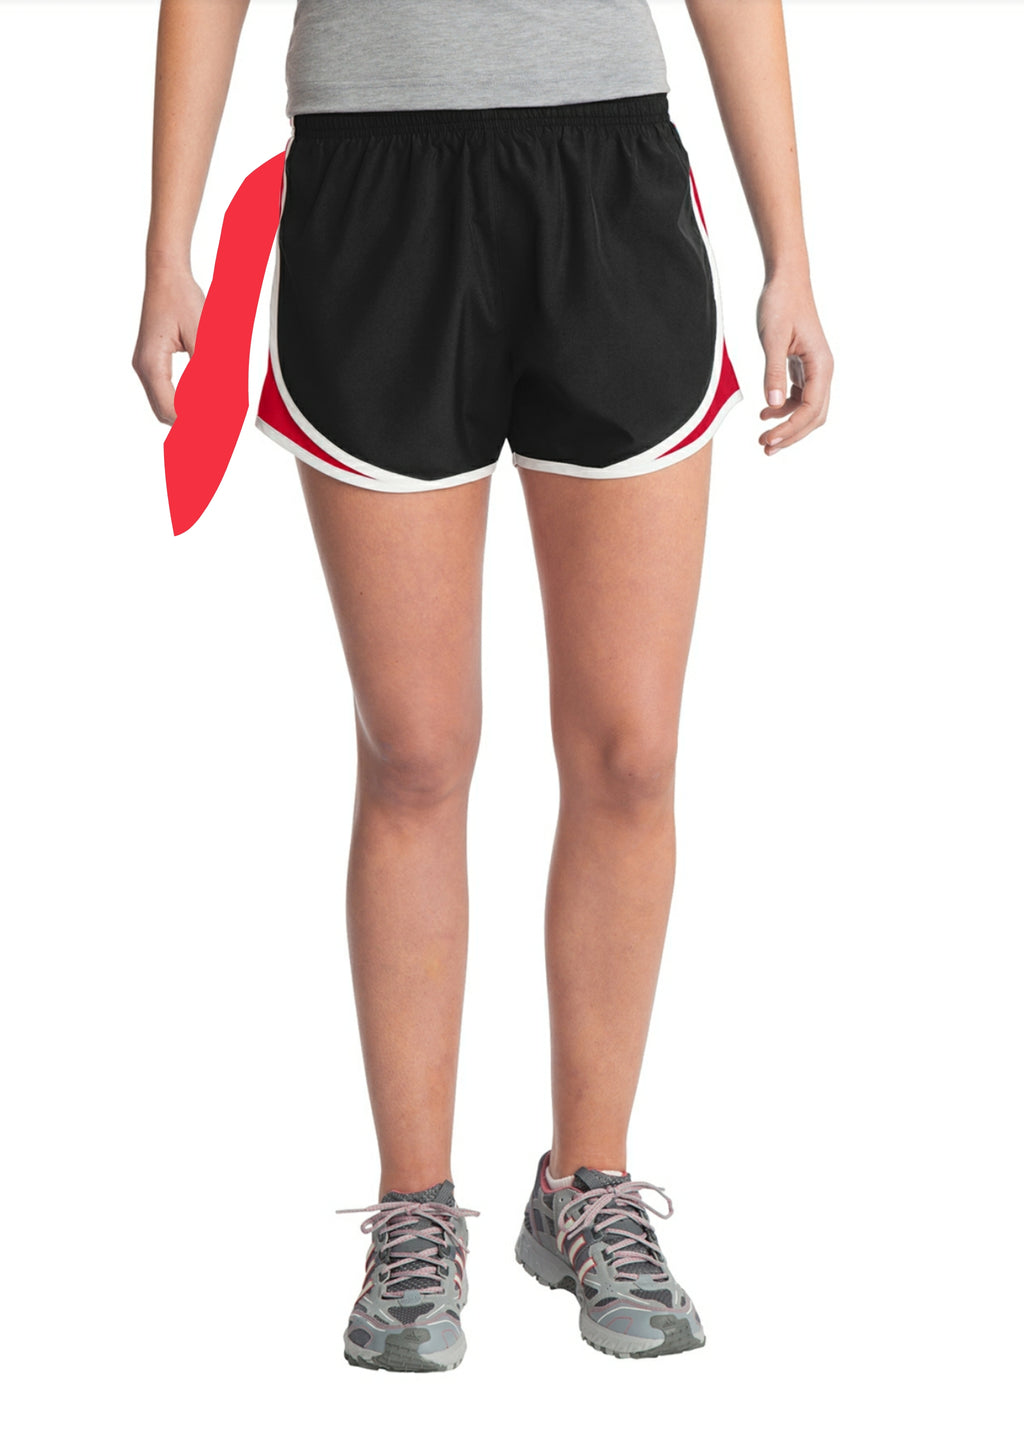 Sweaty Tee - Women's Shorts - black, red, white